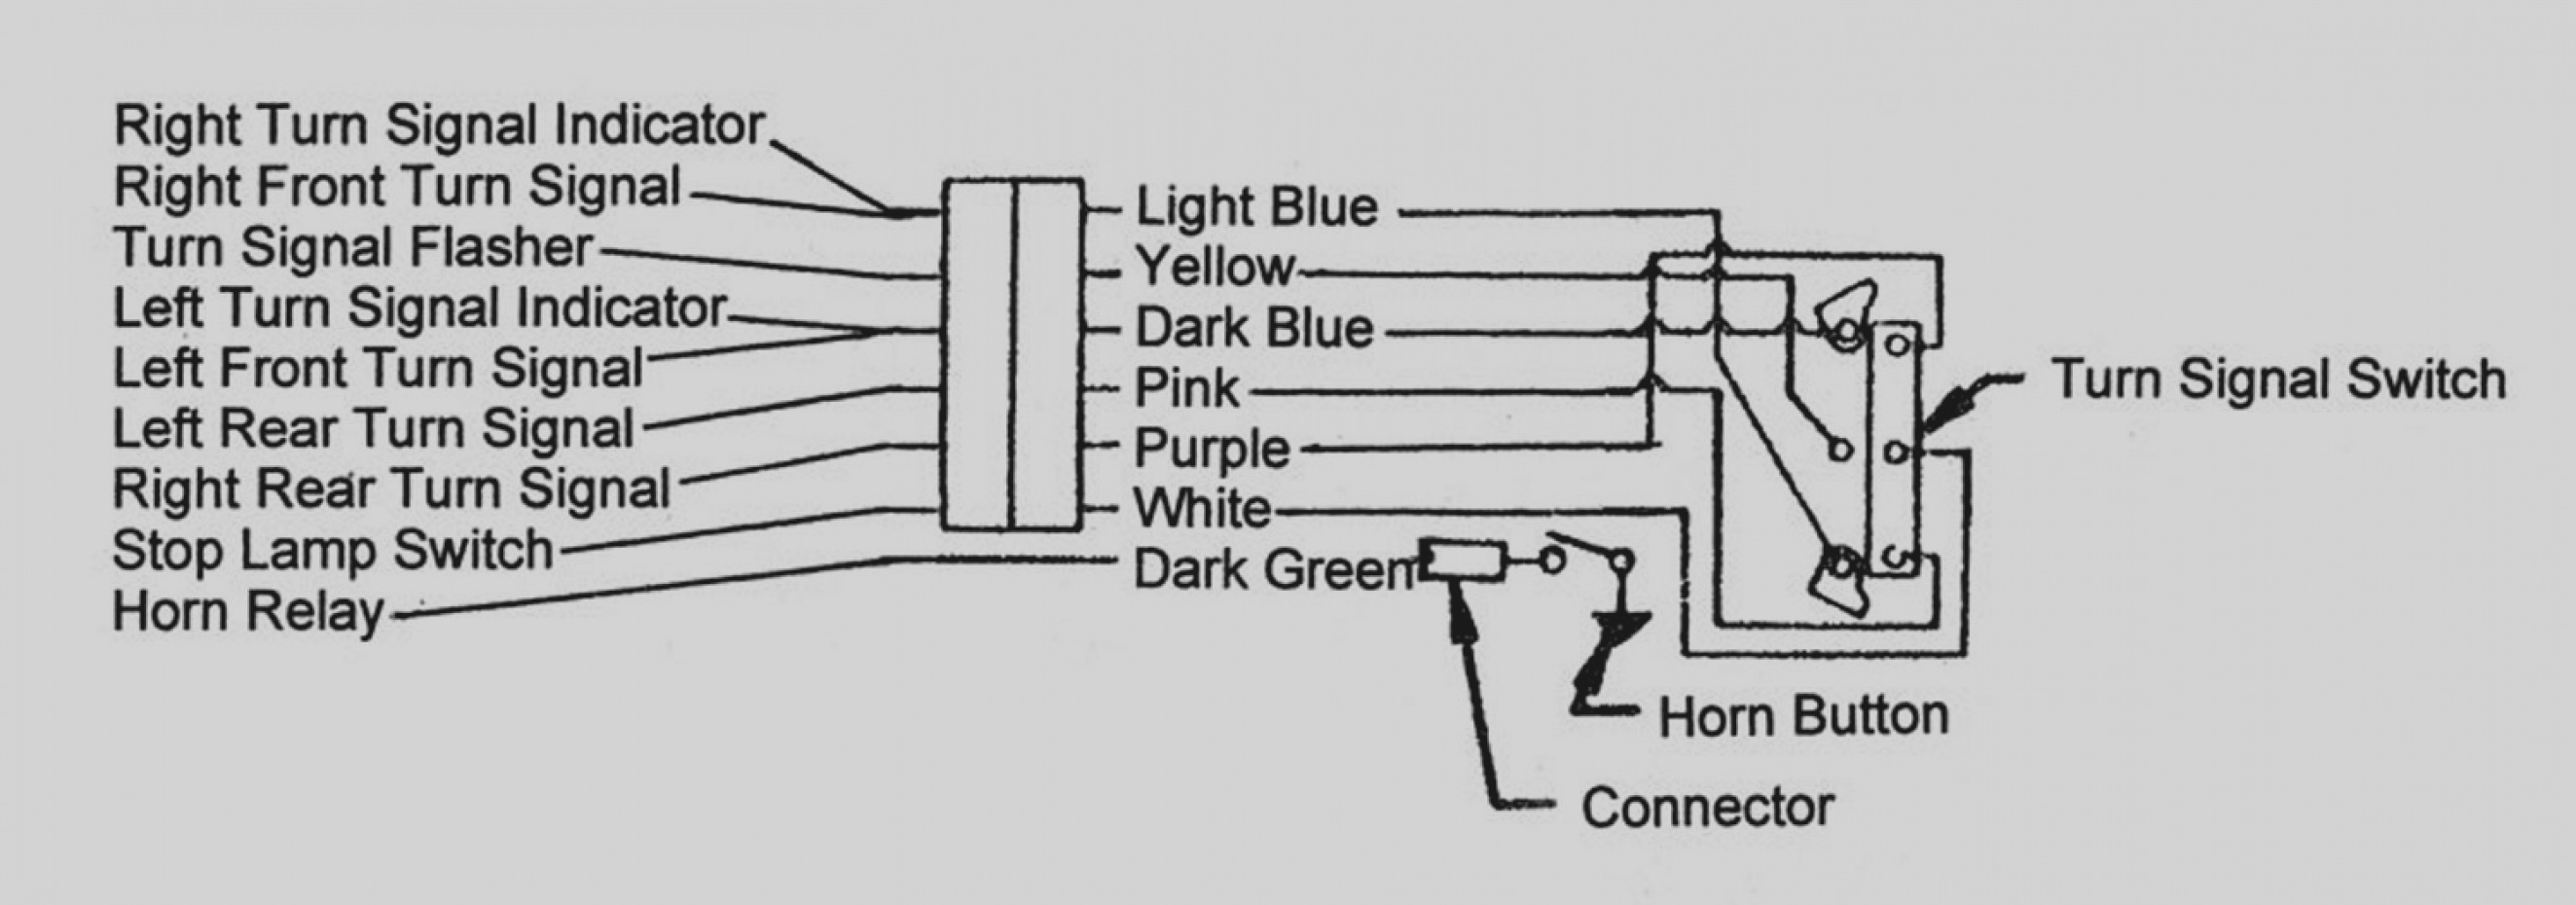 55 F100 Wire Diagram | Wiring Diagram F Turn Signal Wiring Diagram on